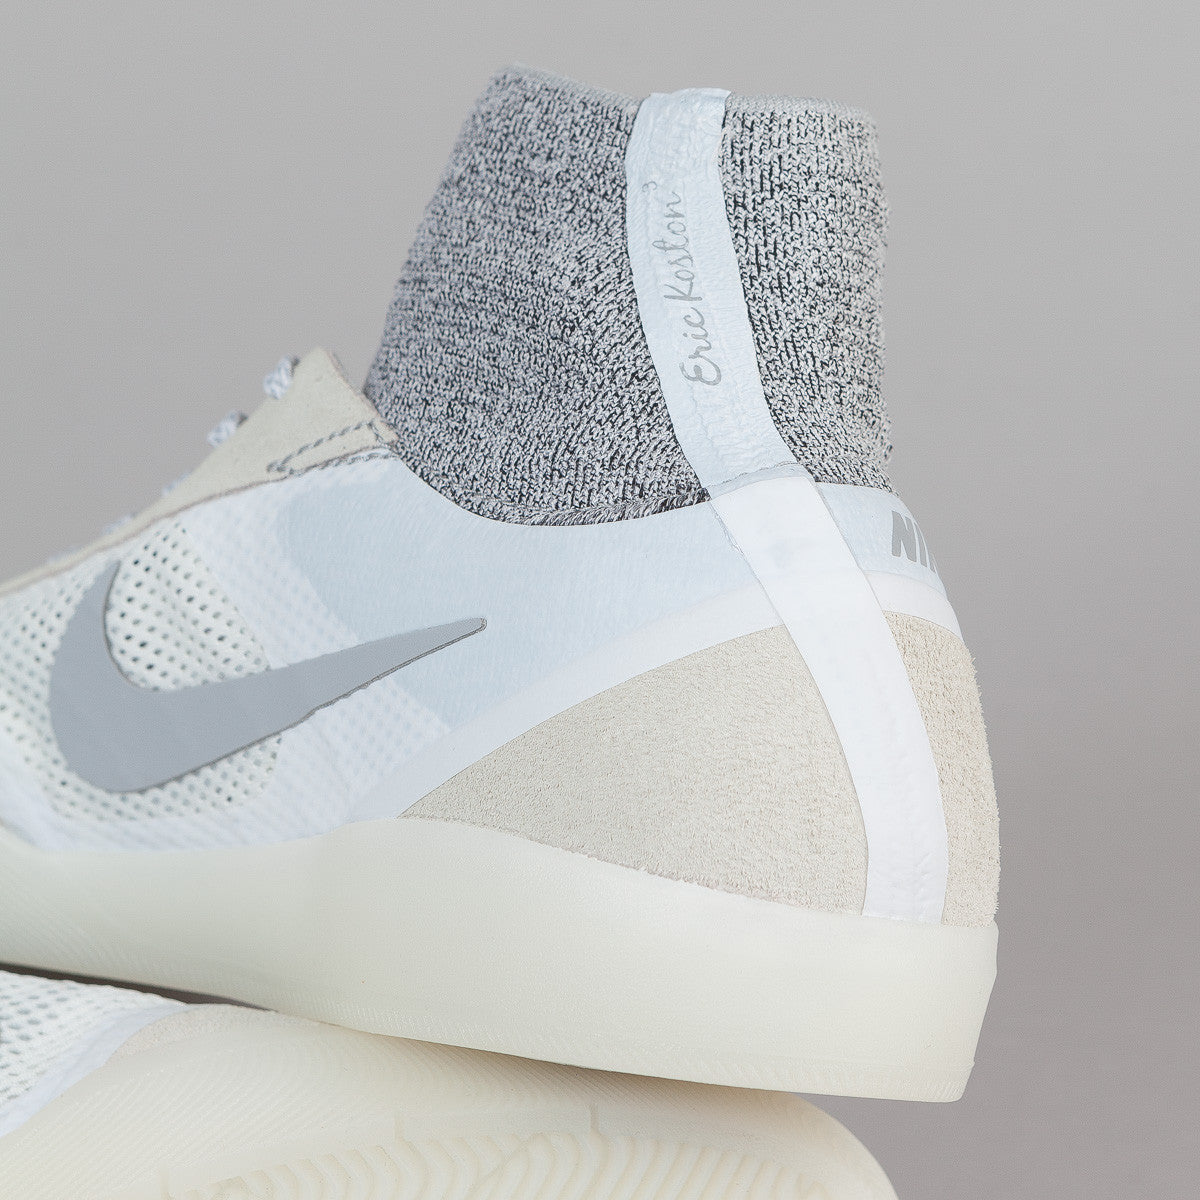 Nike SB Koston 3 Hyperfeel Shoes - Summit White/Wolf Grey - White